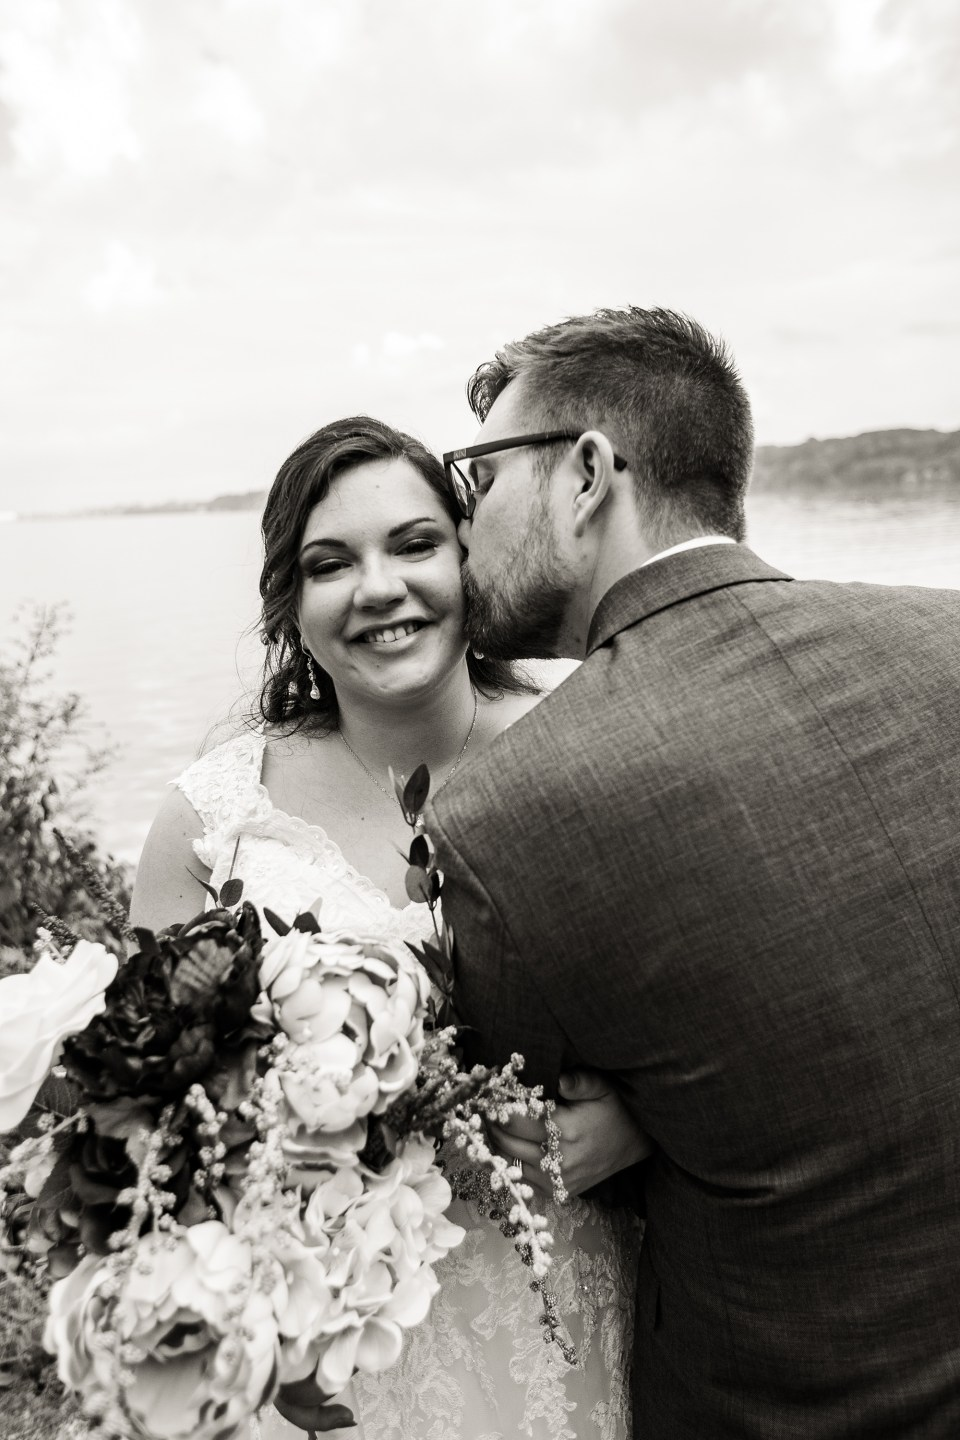 Erie, PA groom kisses bride on cheek at Presque Isle State Park